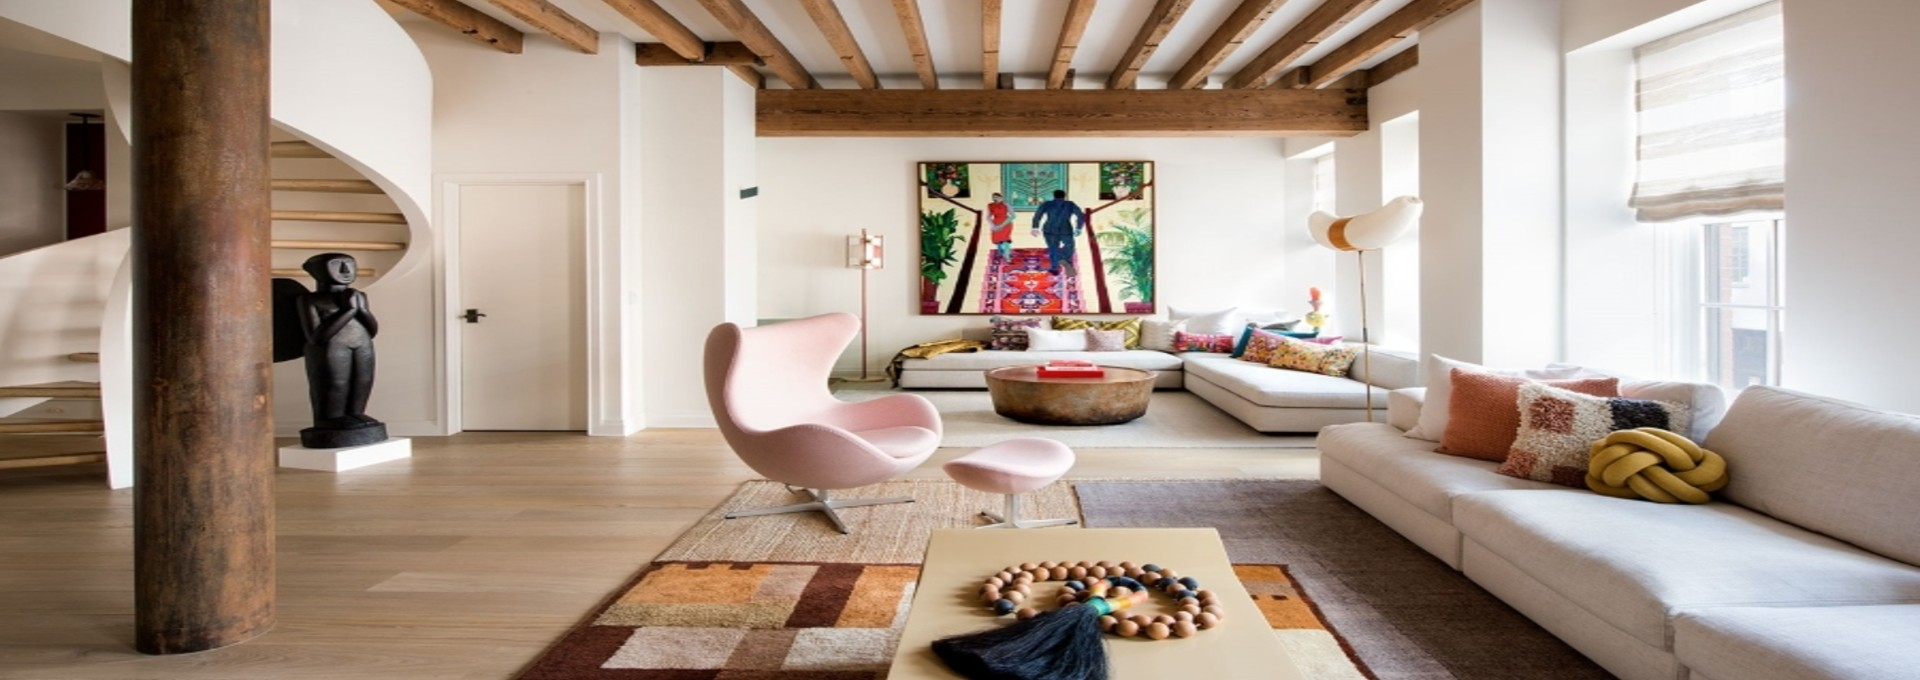 https://dailydesignews.com/forbes-star-award-winners-the-2021-travel-guide/?utm_source=blog&utm_medium=see-also&utm_content=dailydesignnews-interior-designers-:-the-nyc-top-2&utm_campaign=topID